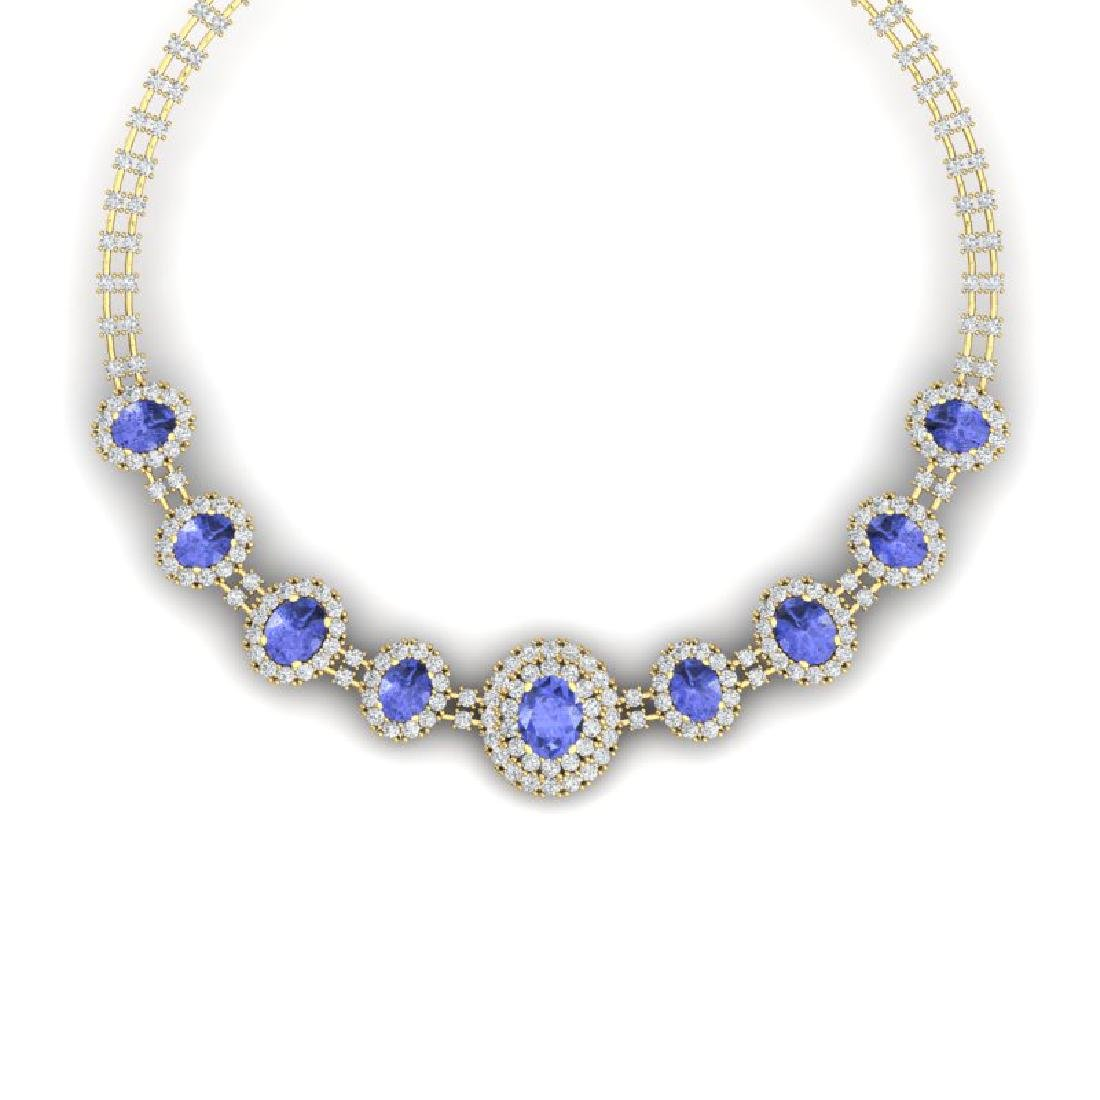 46.51 CTW Royalty Tanzanite & VS Diamond Necklace 18K